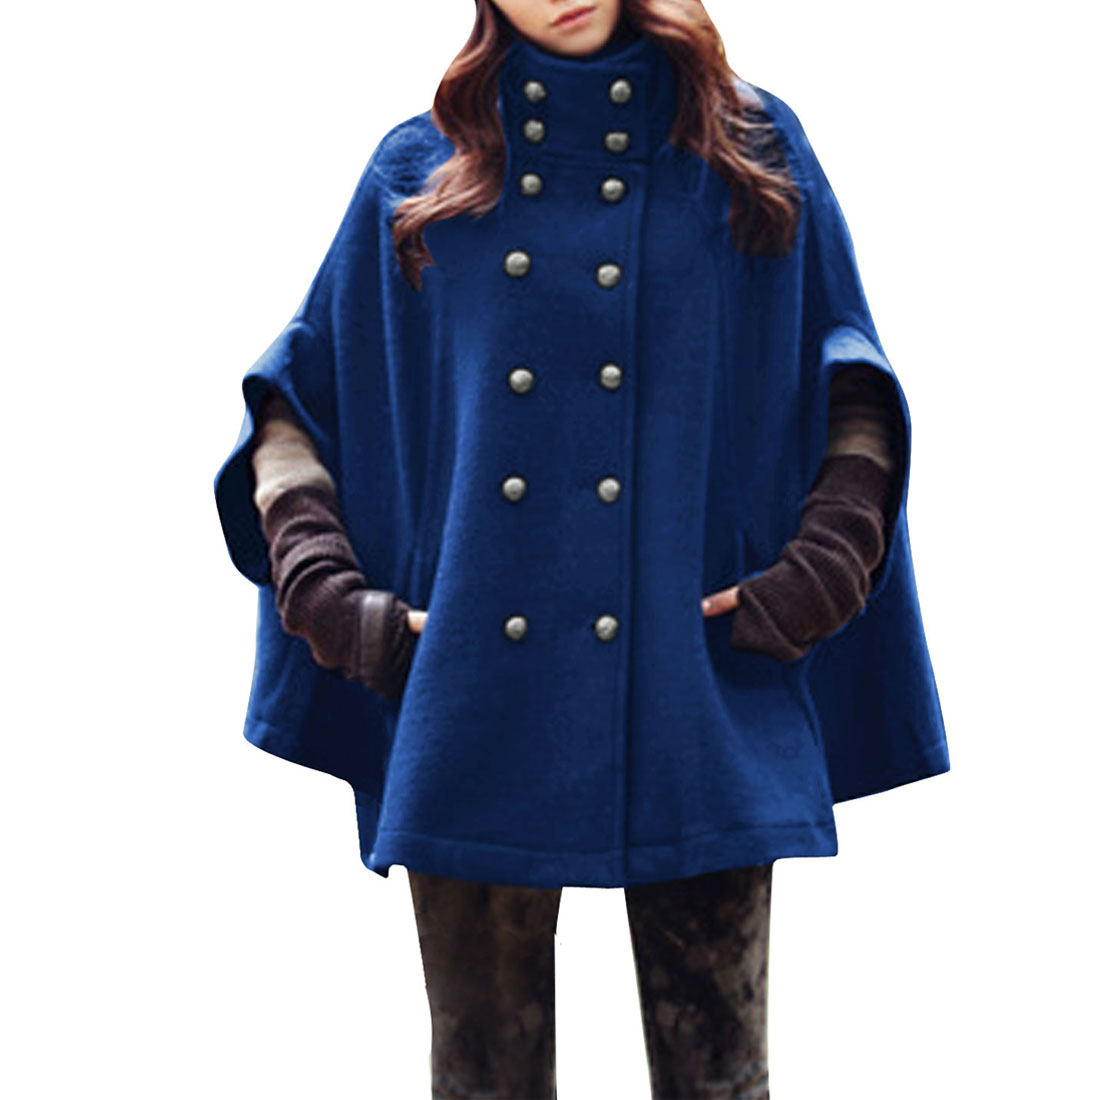 Allegra K Women's Stand Collar Seam Pocket Poncho Coat Royal Blue (Size M / 8)